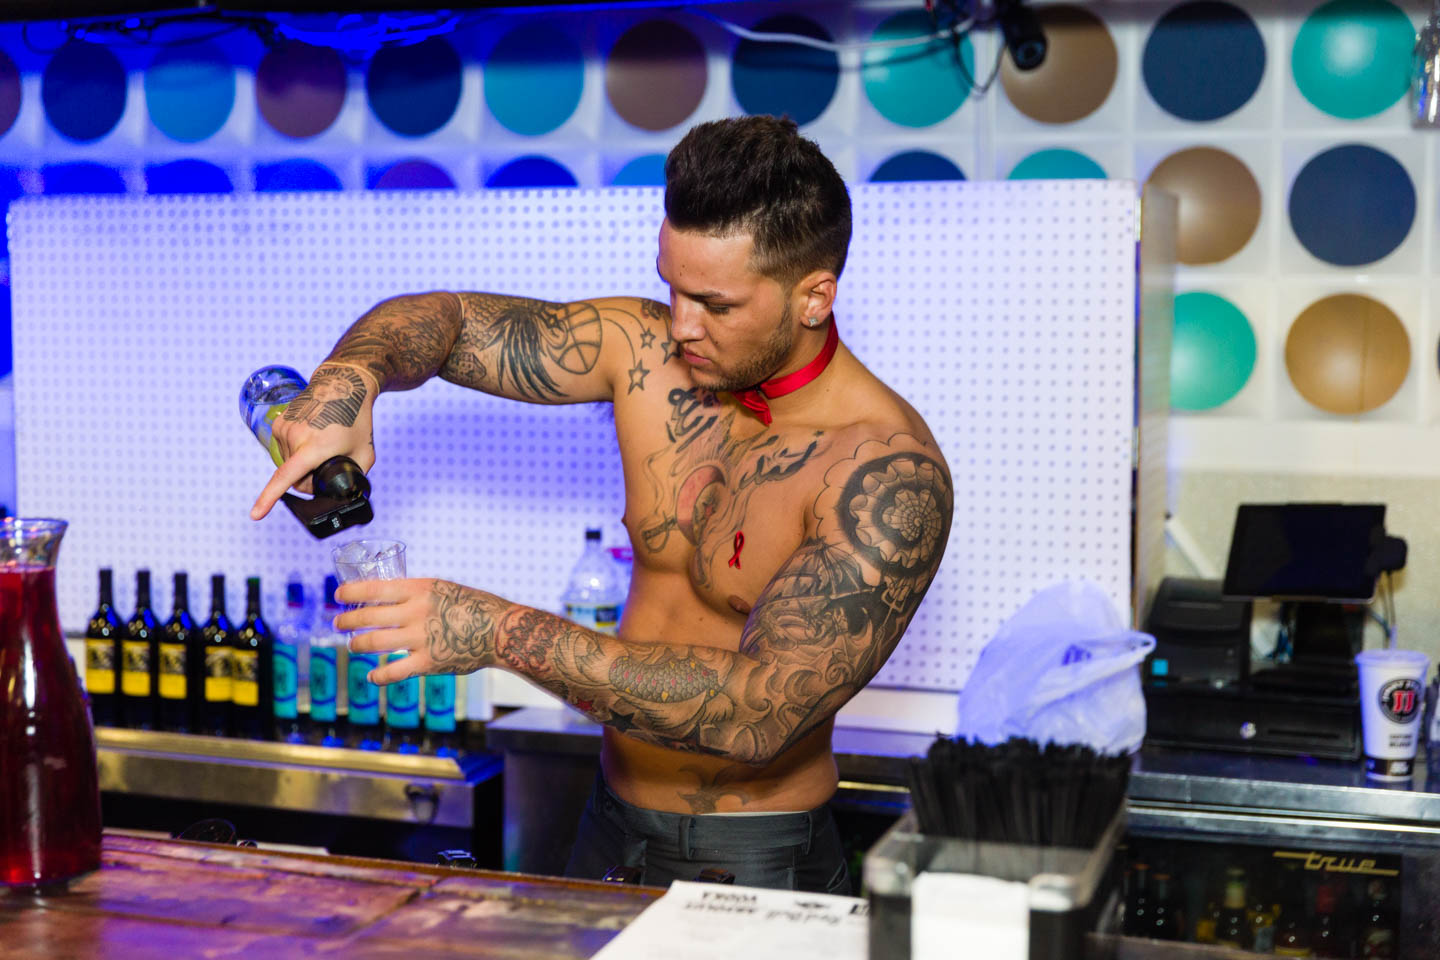 Shirtless tattooed bartenders